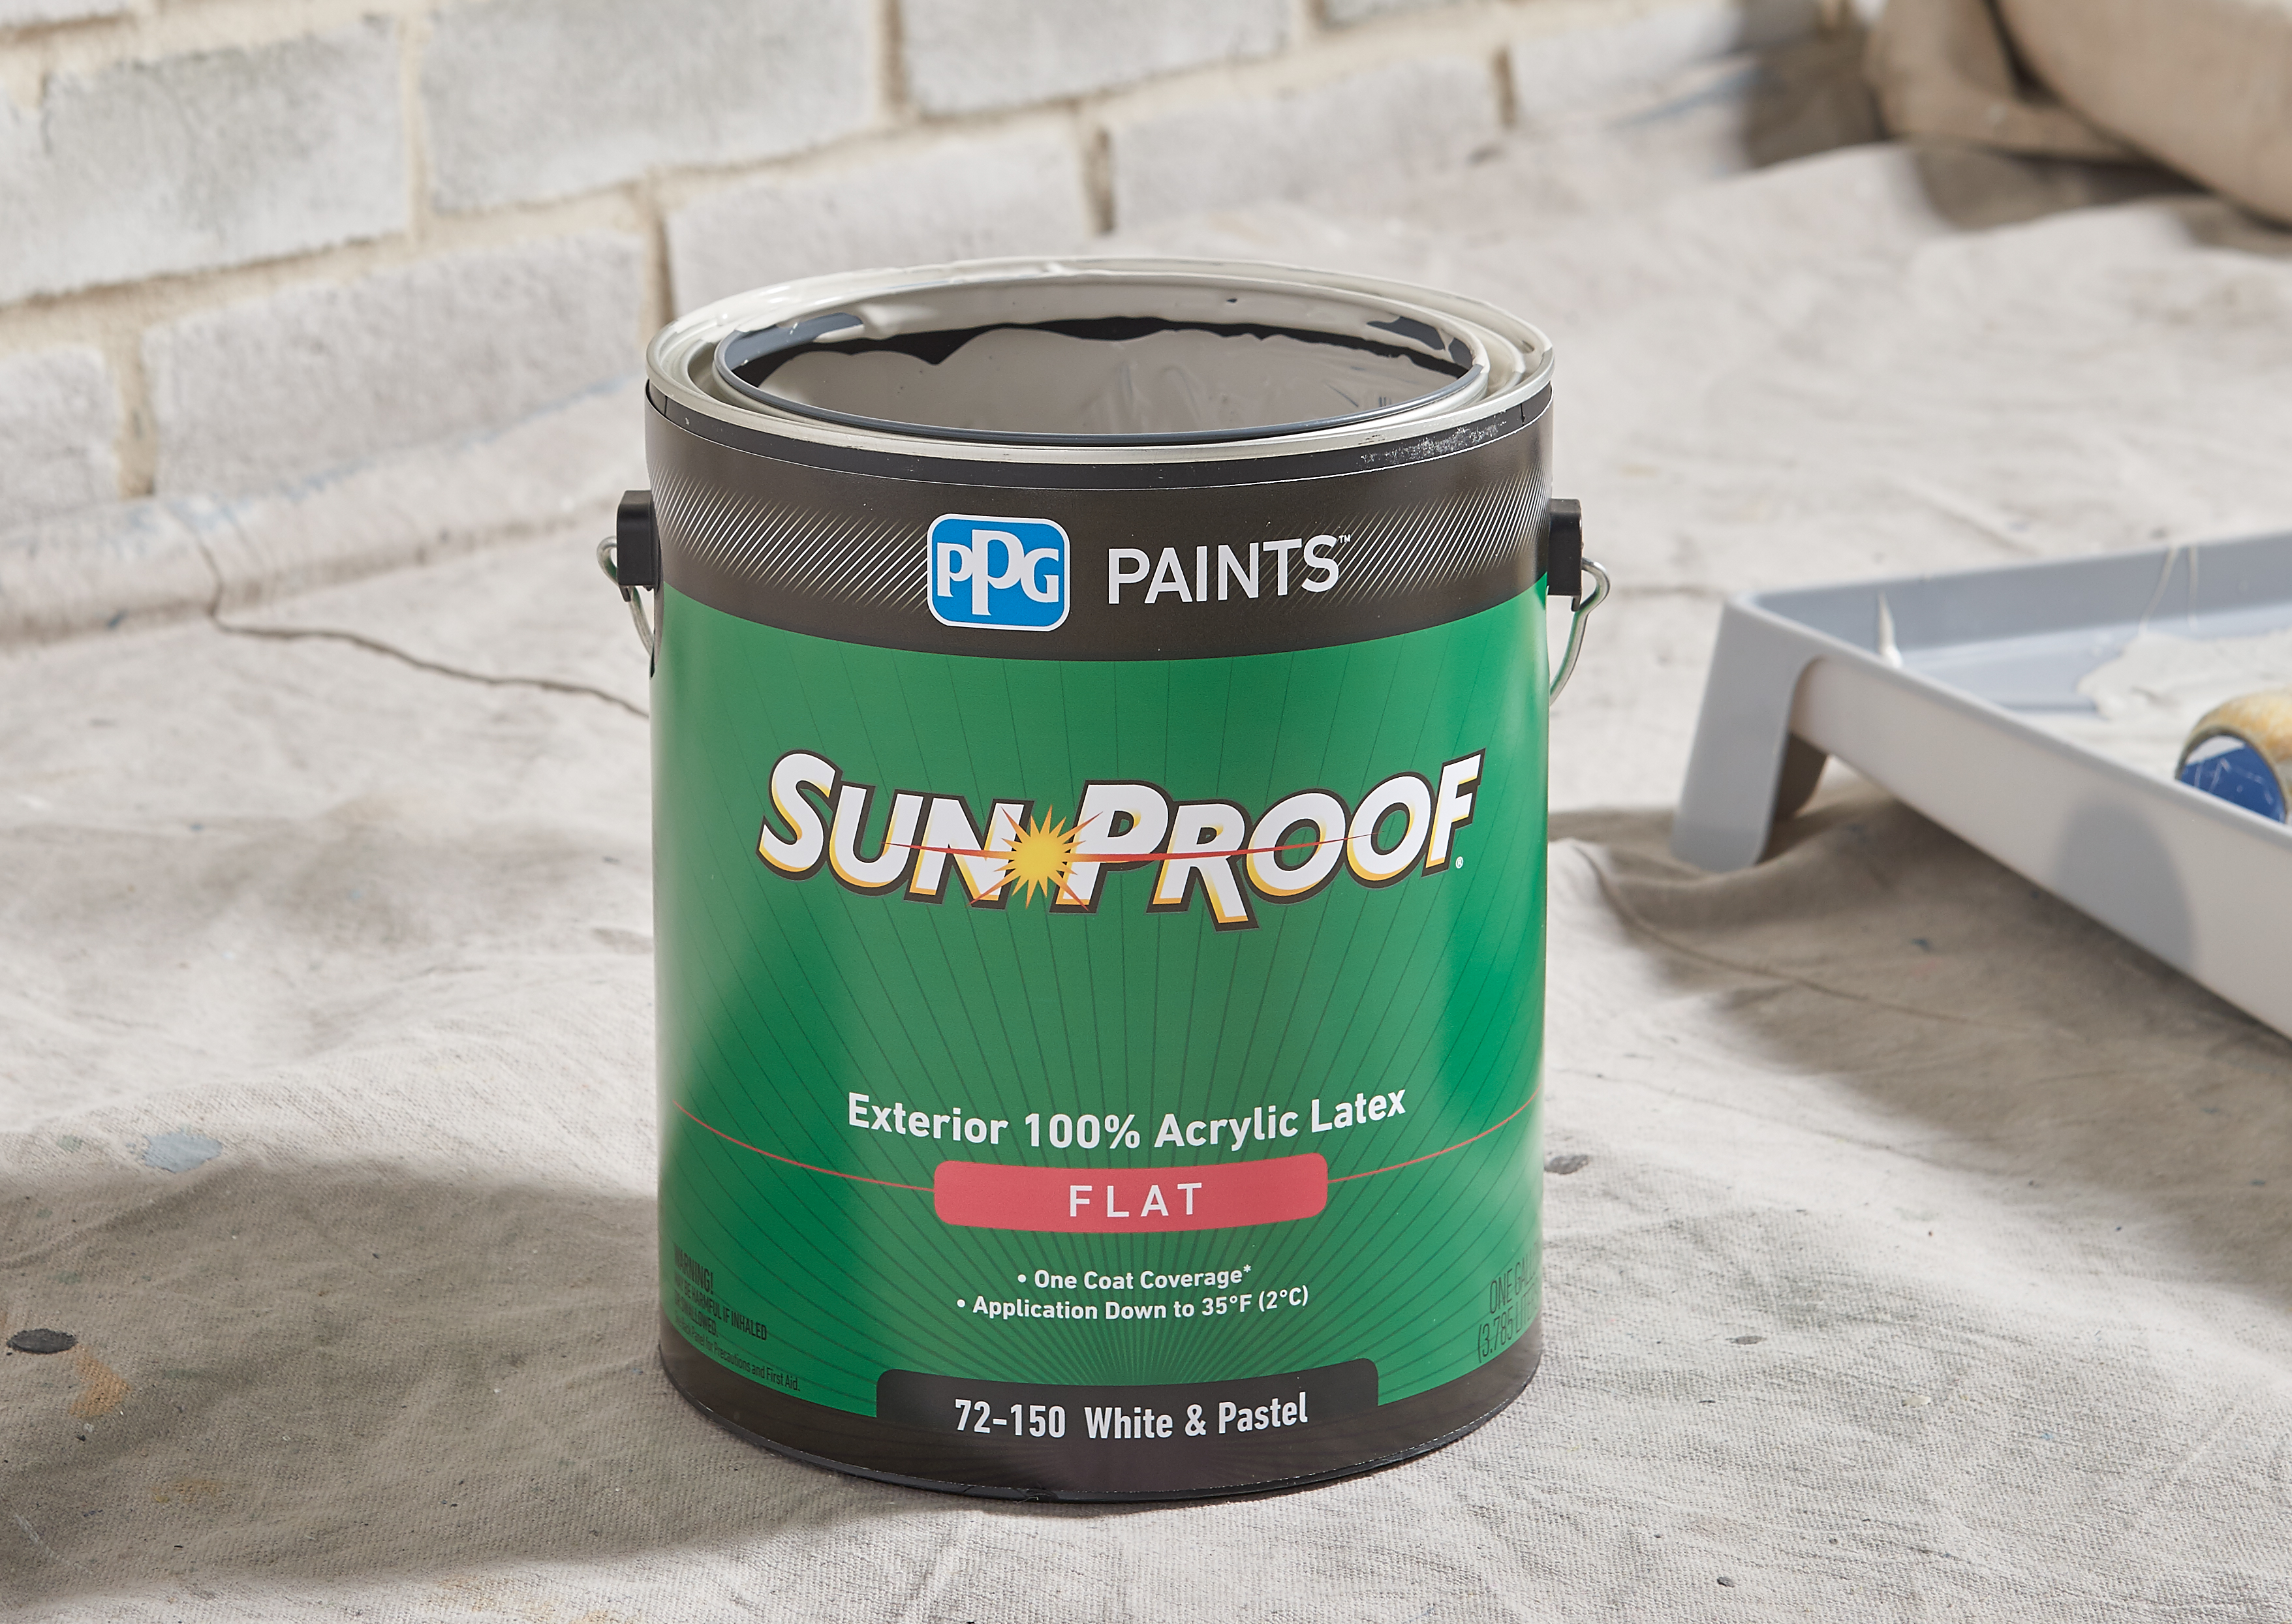 The importance of high quality exterior paint jlc - How fast does exterior paint dry ...